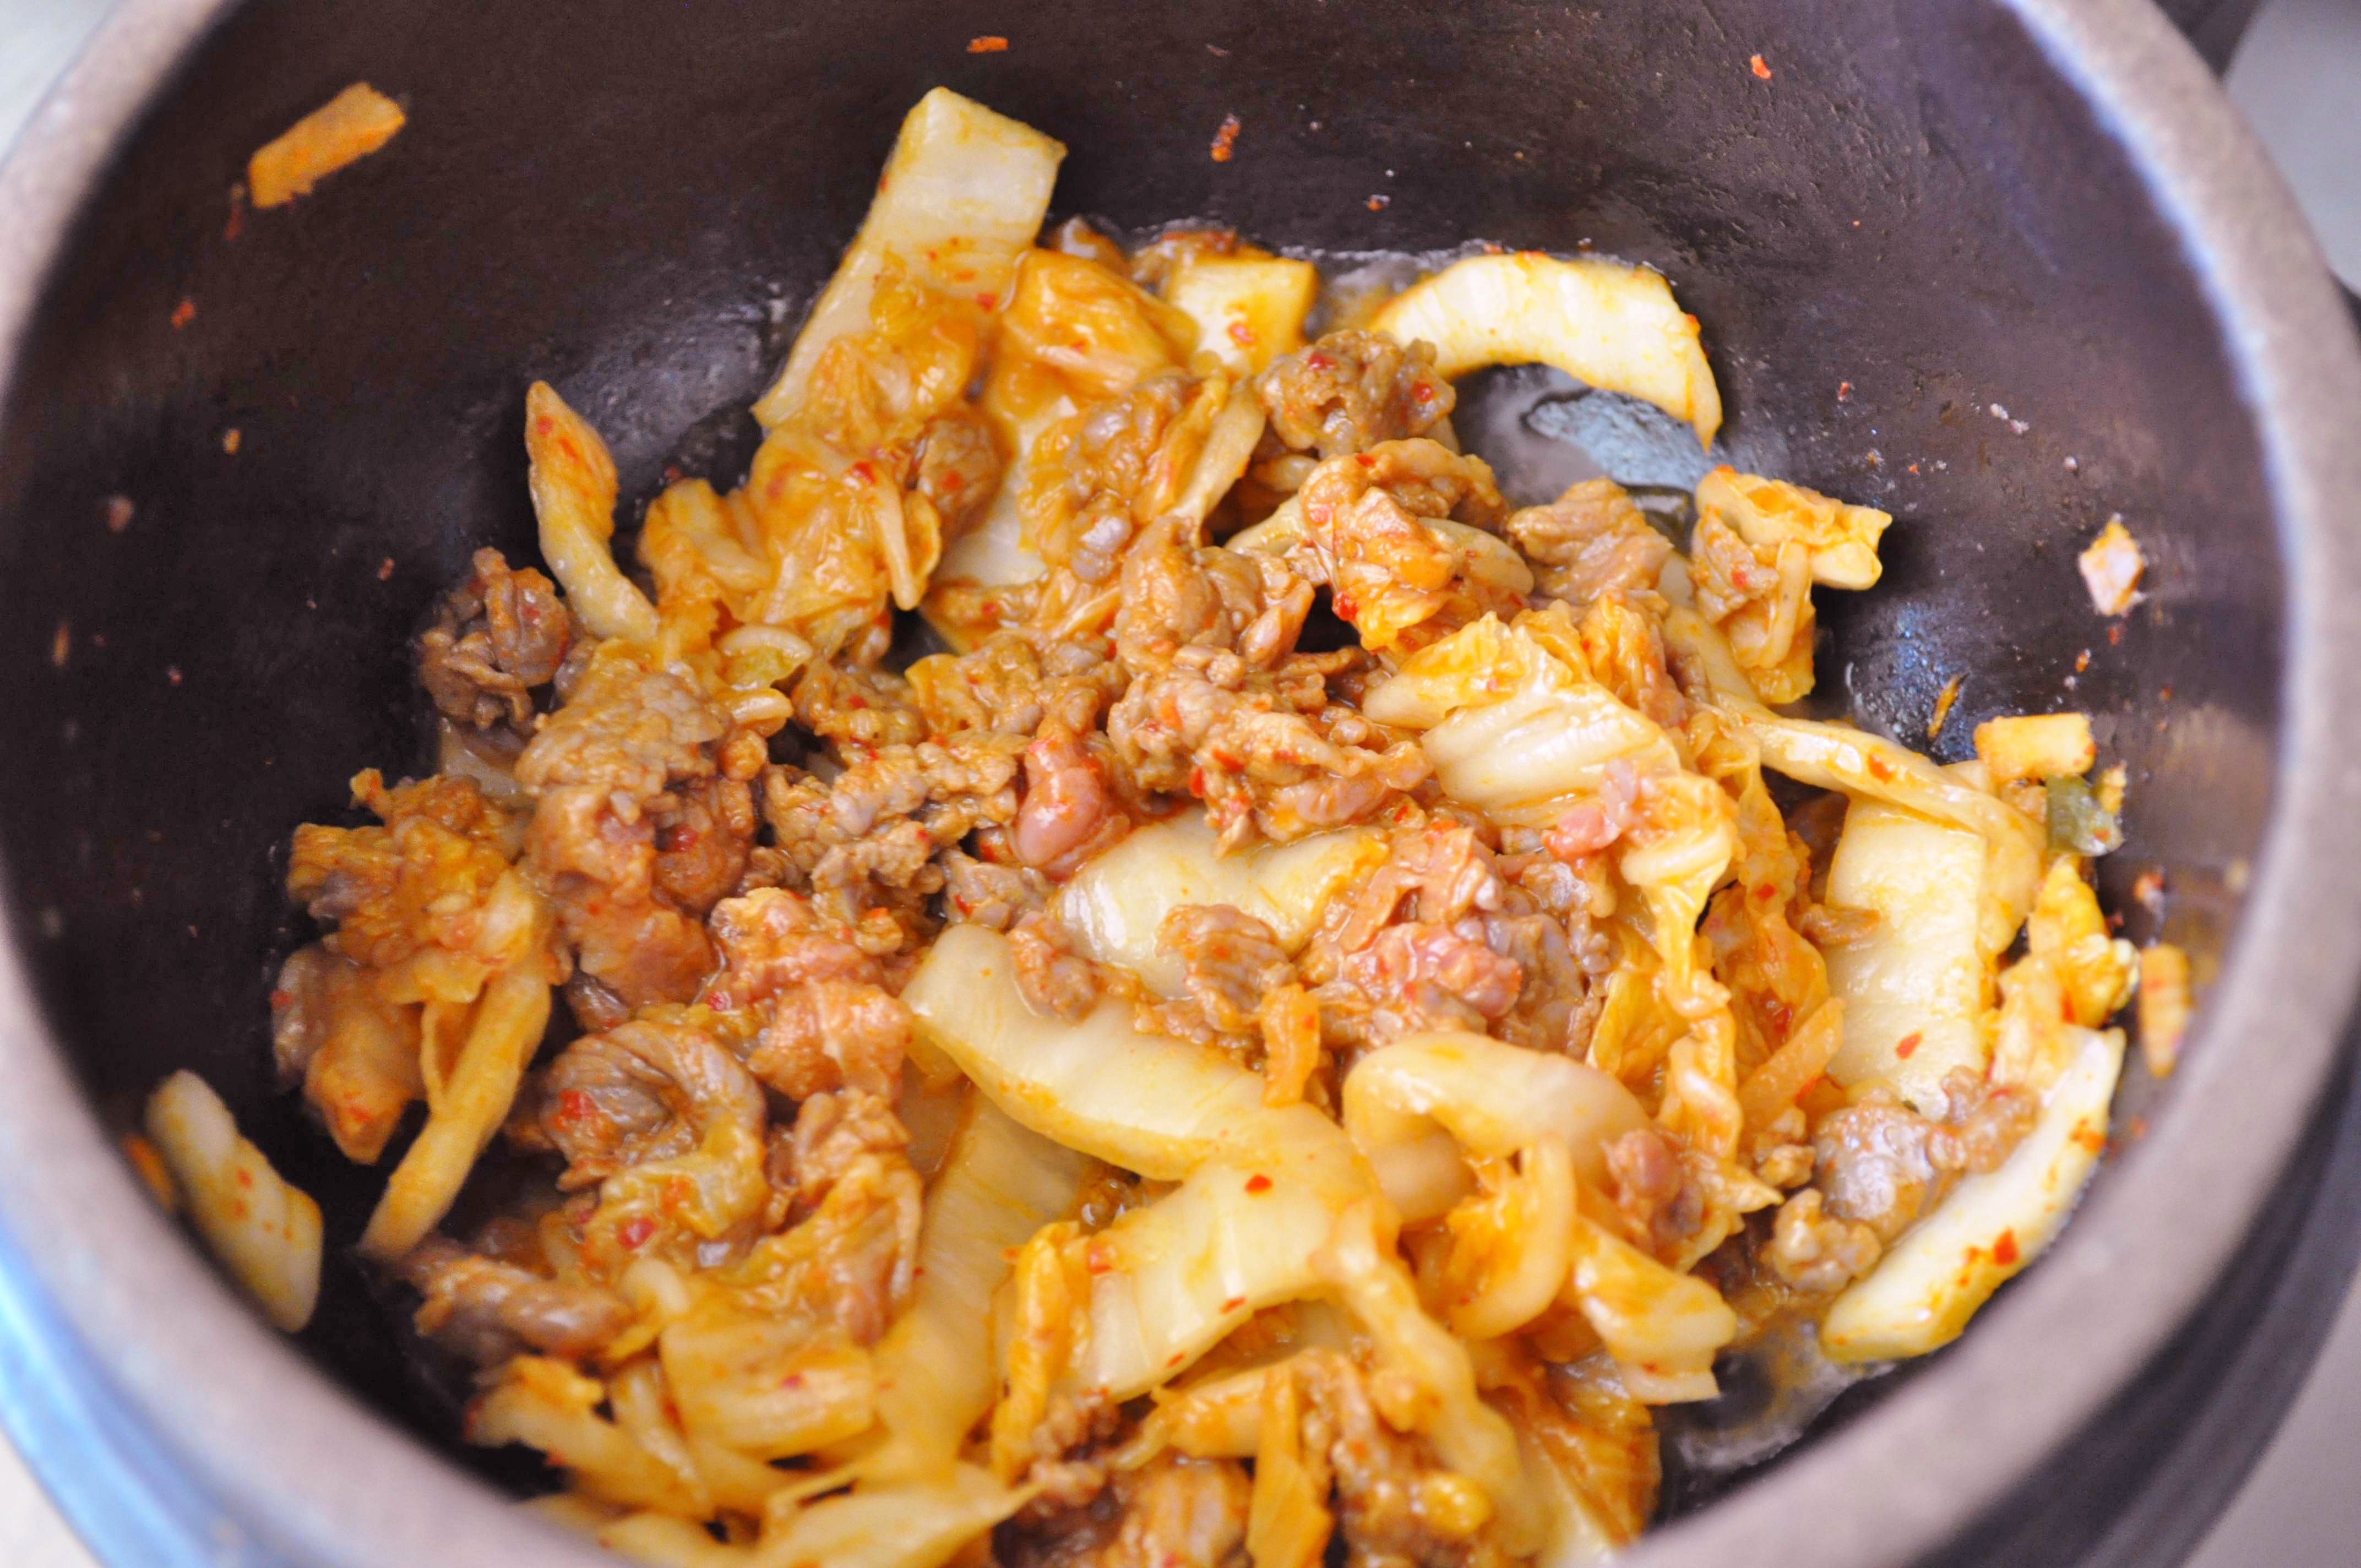 kimchi and beef cooking in hot pot